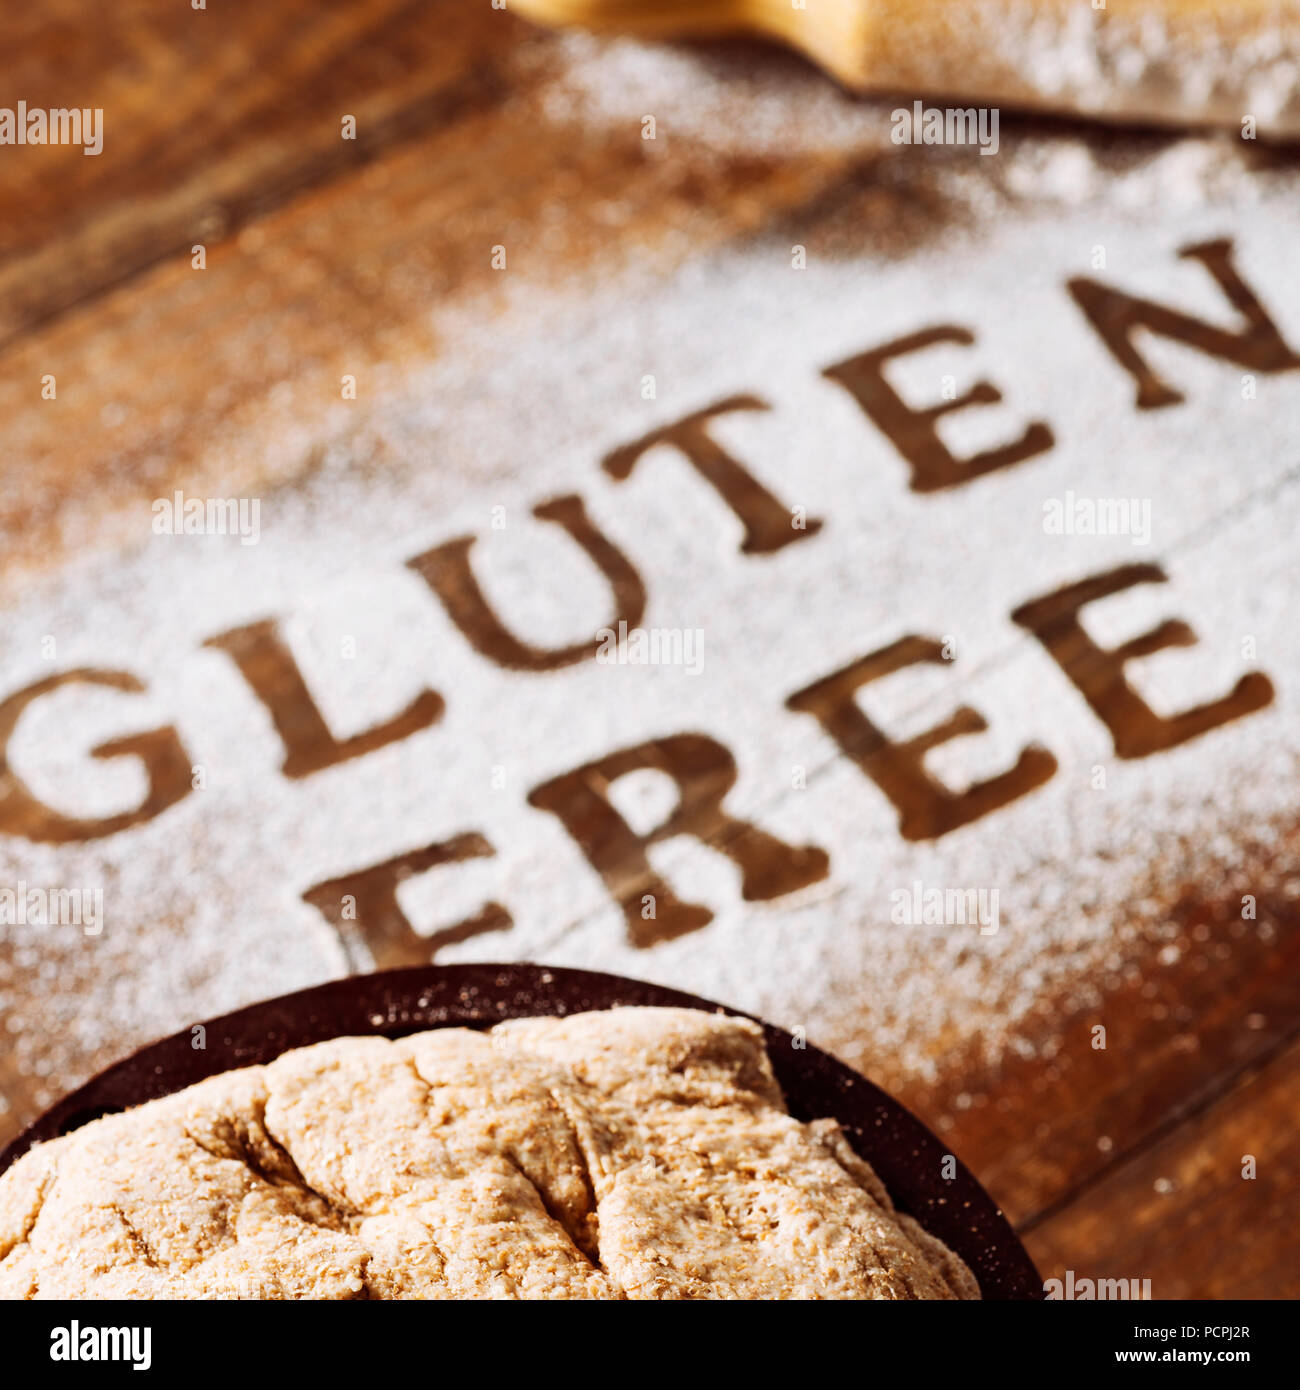 closeup of a wooden table sprinkled with a gluten free flour where you can read the text gluten free, next to a rolling pin and a piece of dough - Stock Image